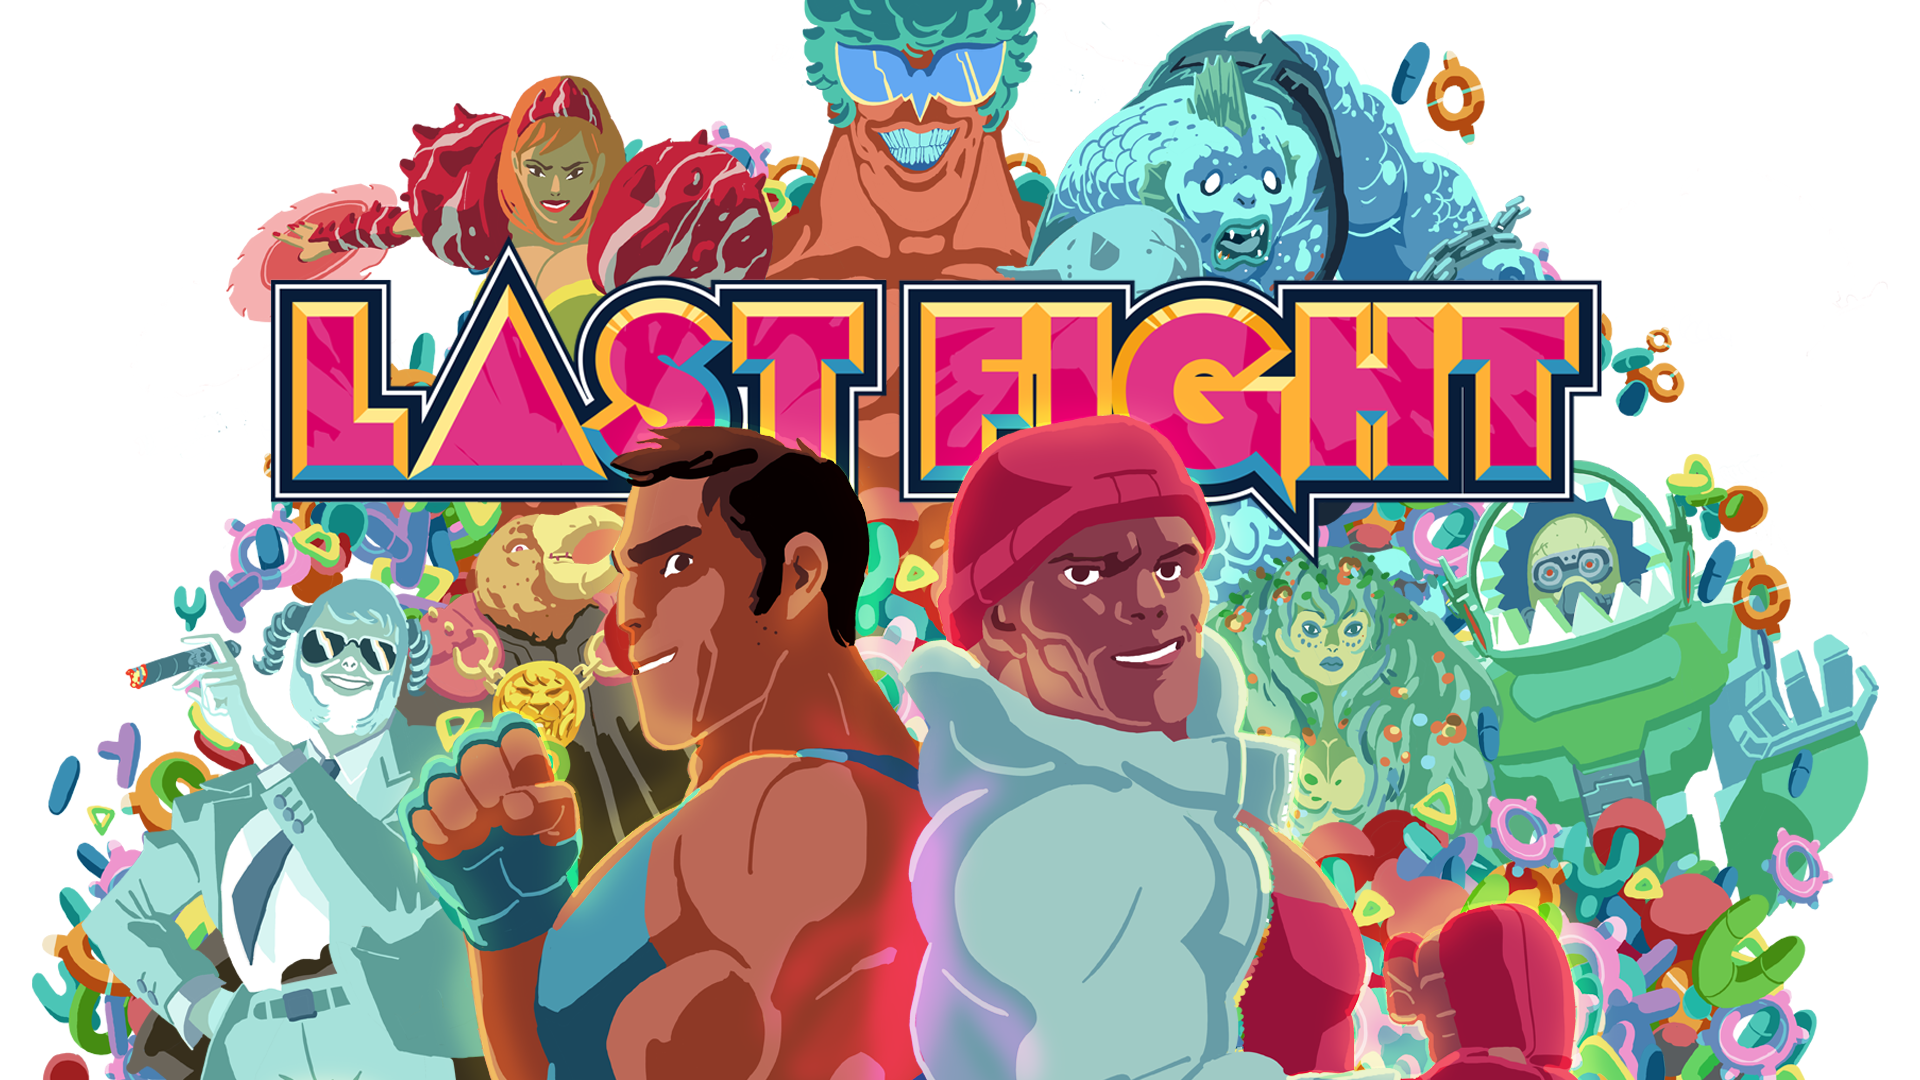 LASTFIGHT-poster.png